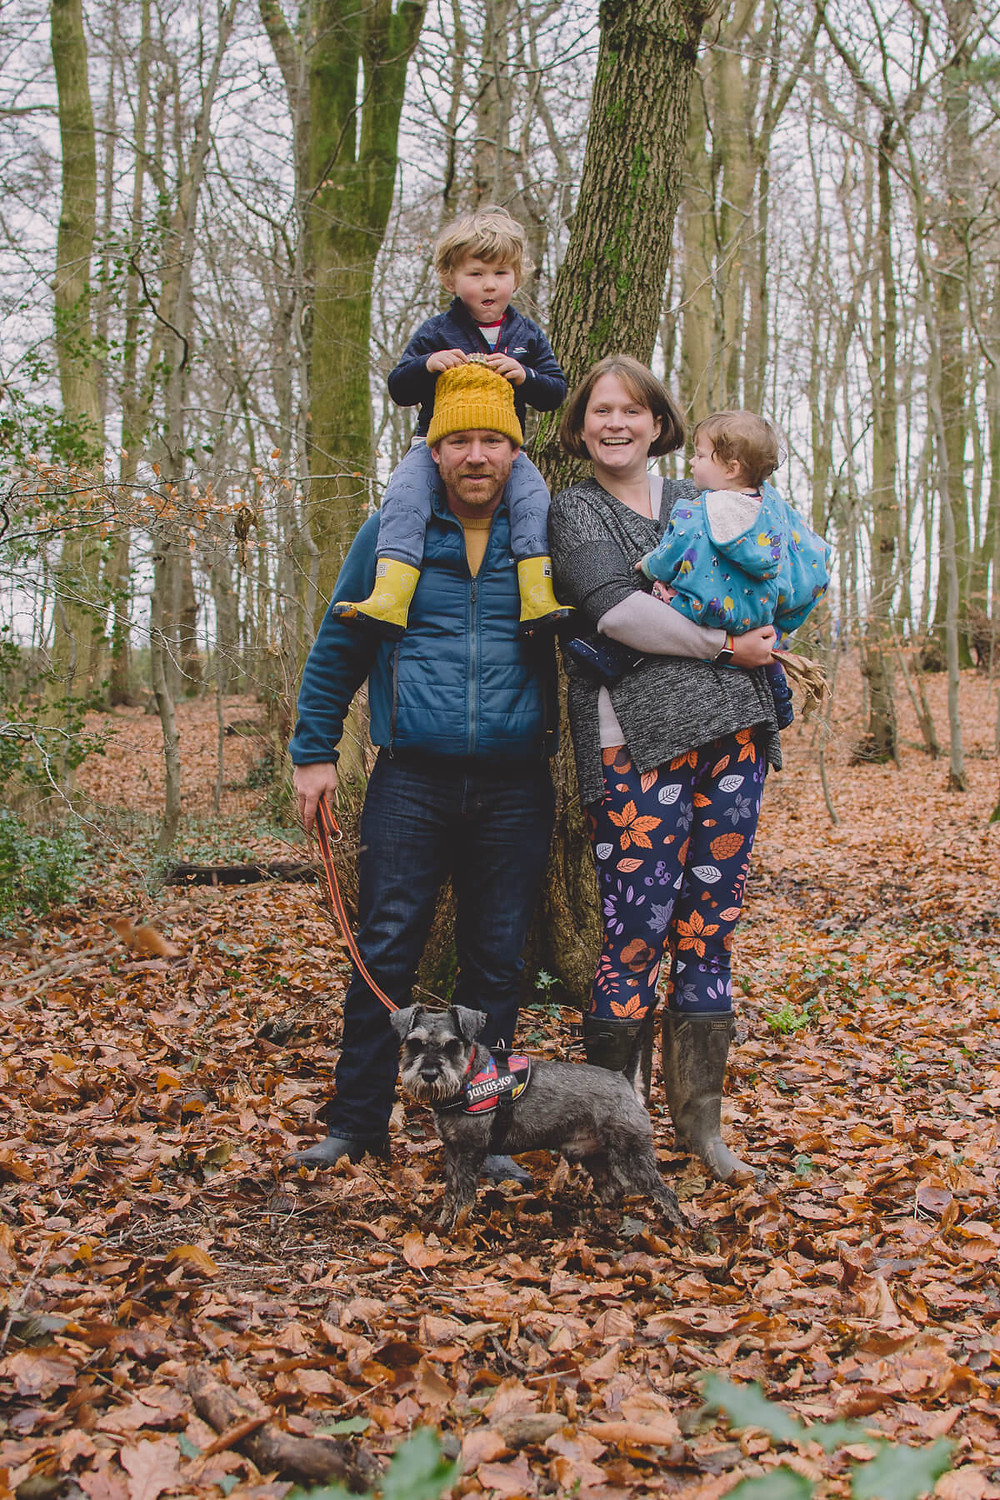 family smiling in forest autumn with dog children playing